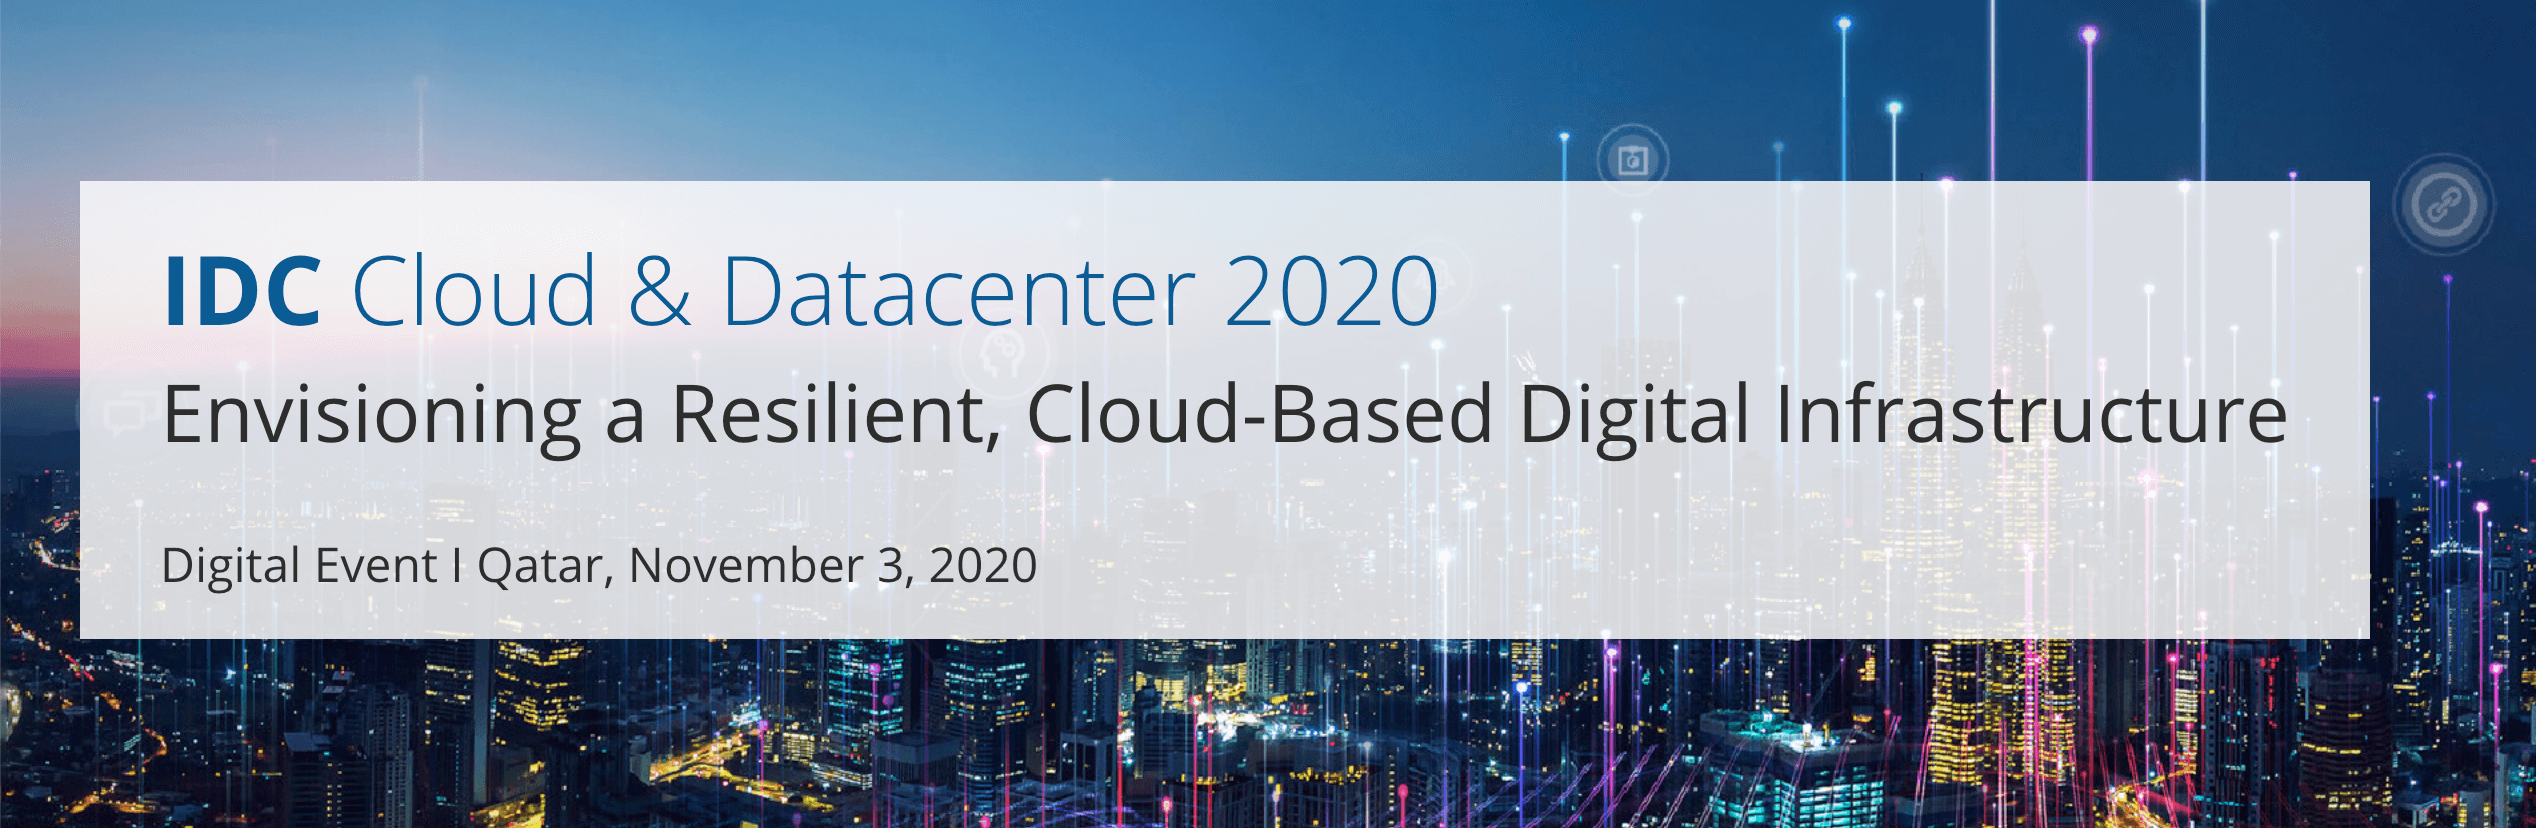 IDC Cloud & Datacenter 2020